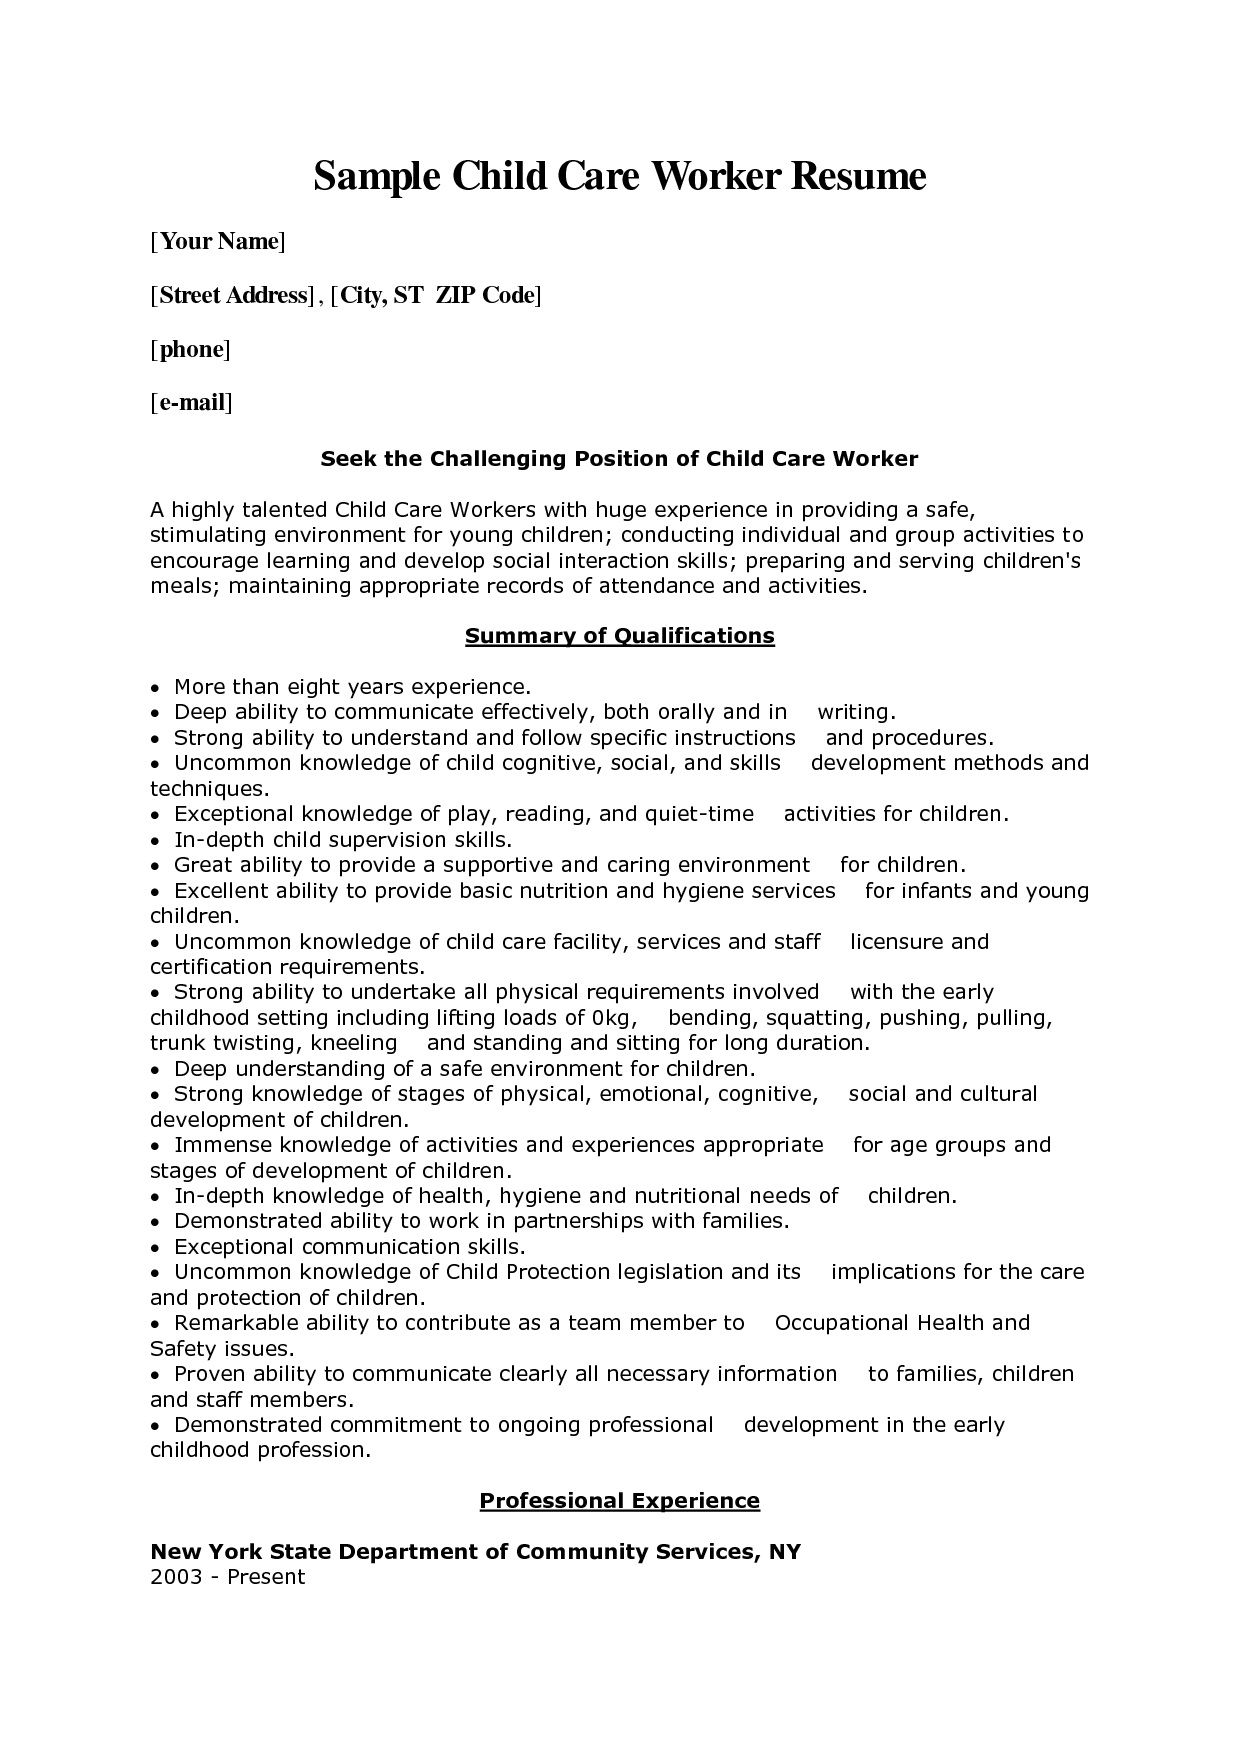 Childcare Worker Resume Child Care Worker Cover Letter Sample Child Care Worker